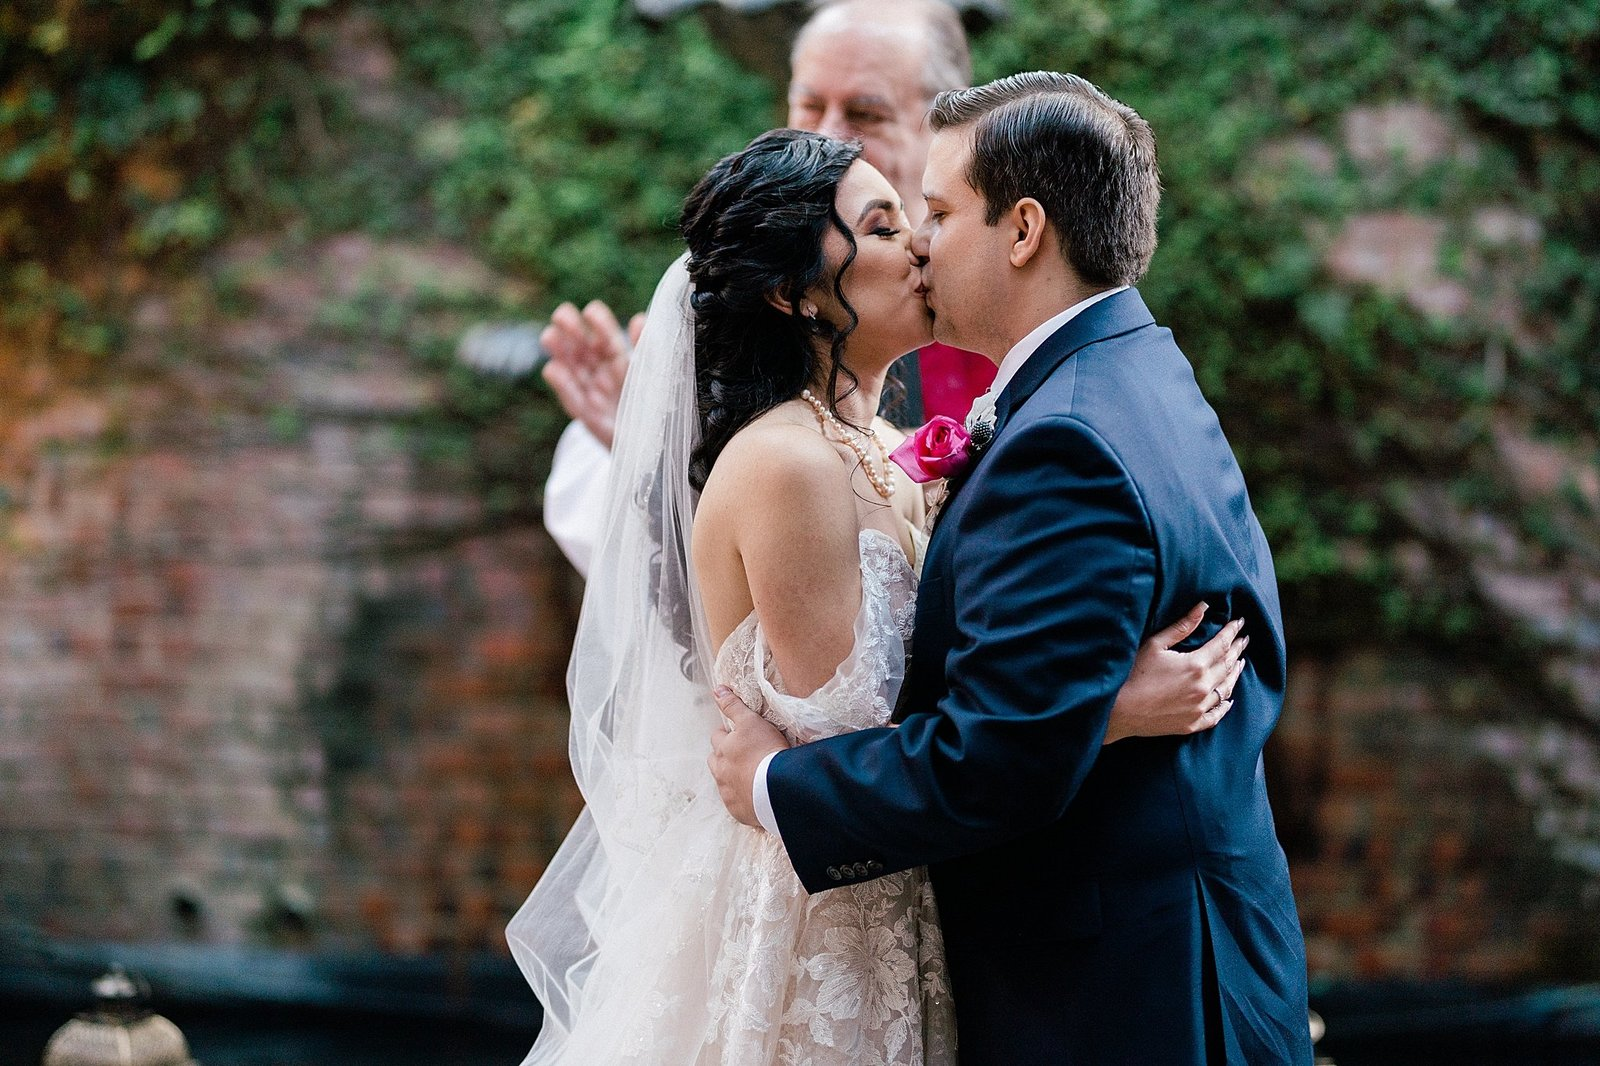 brennans of houston wedding leslie margarita photography_0057